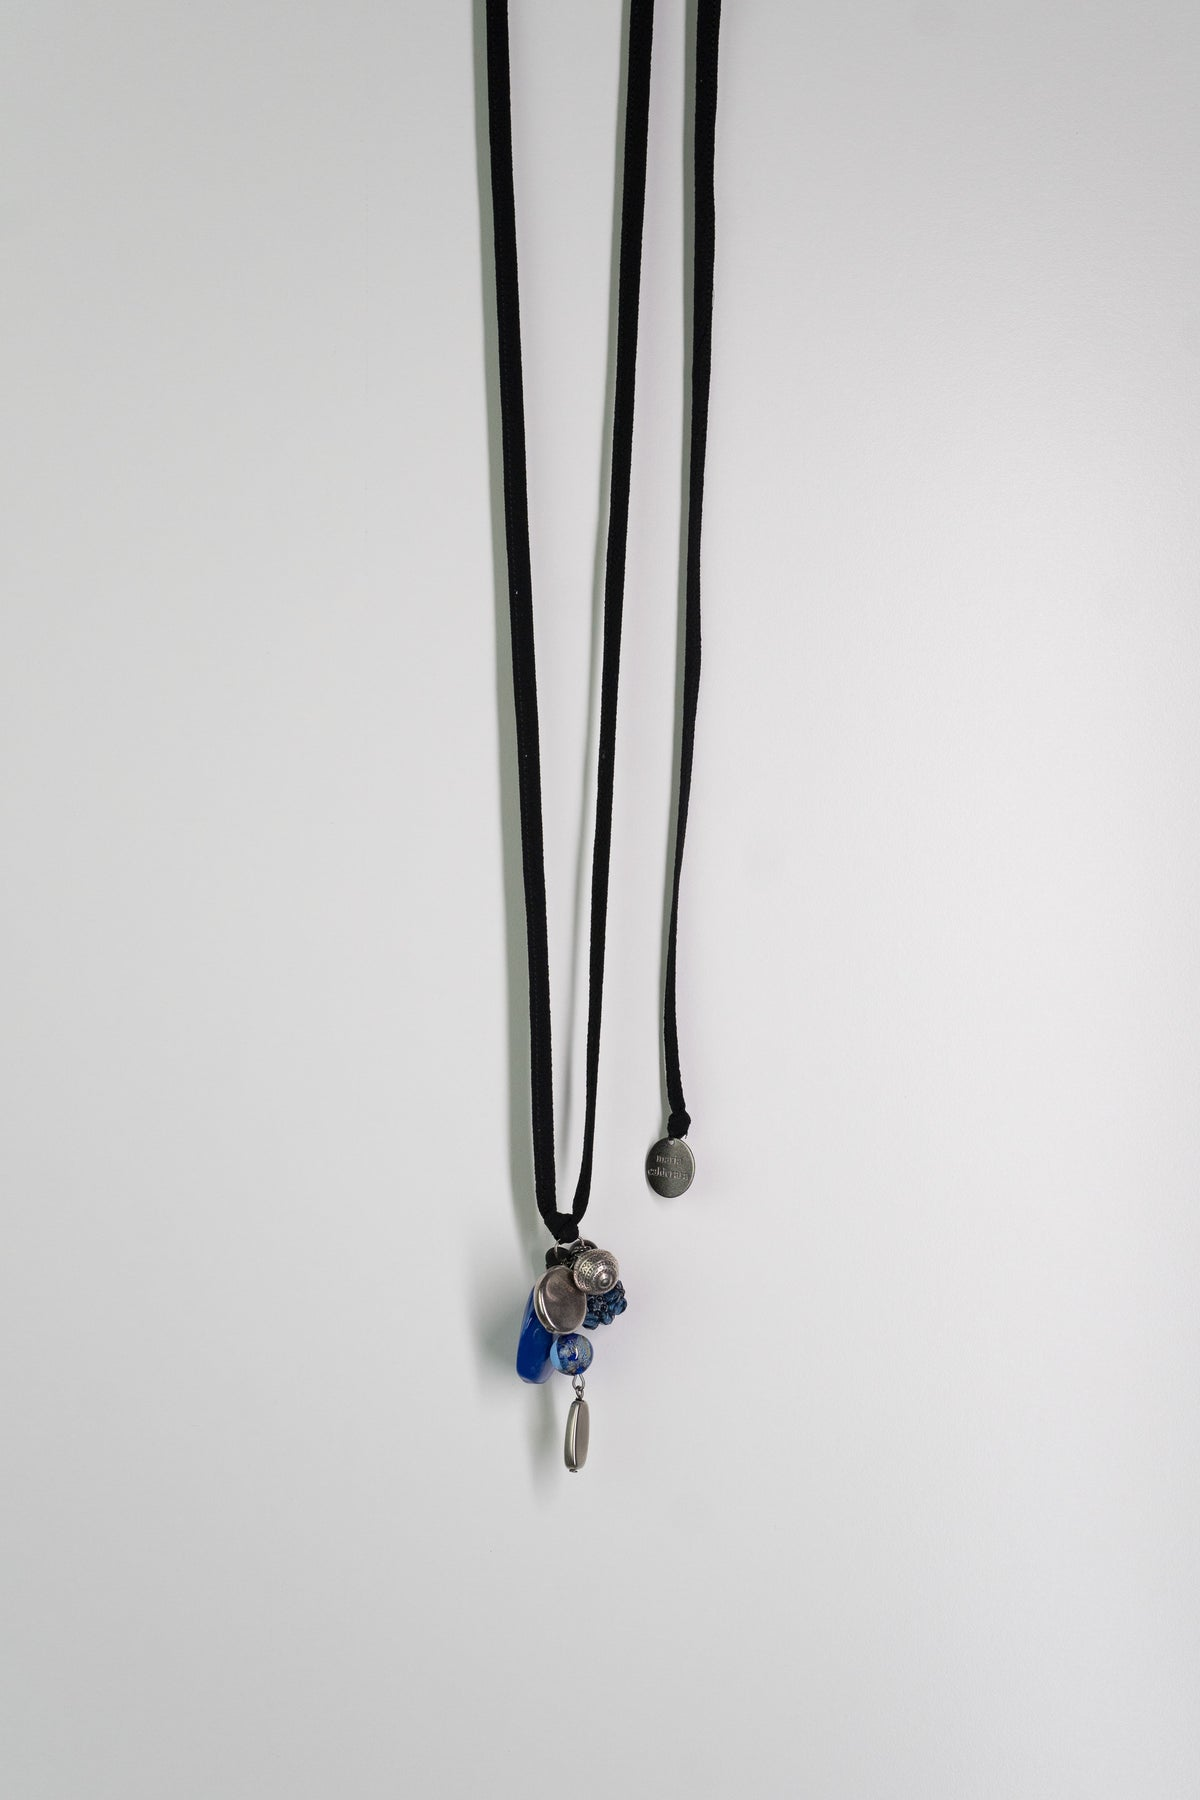 Maria Calderara - 2L121B- Necklace |